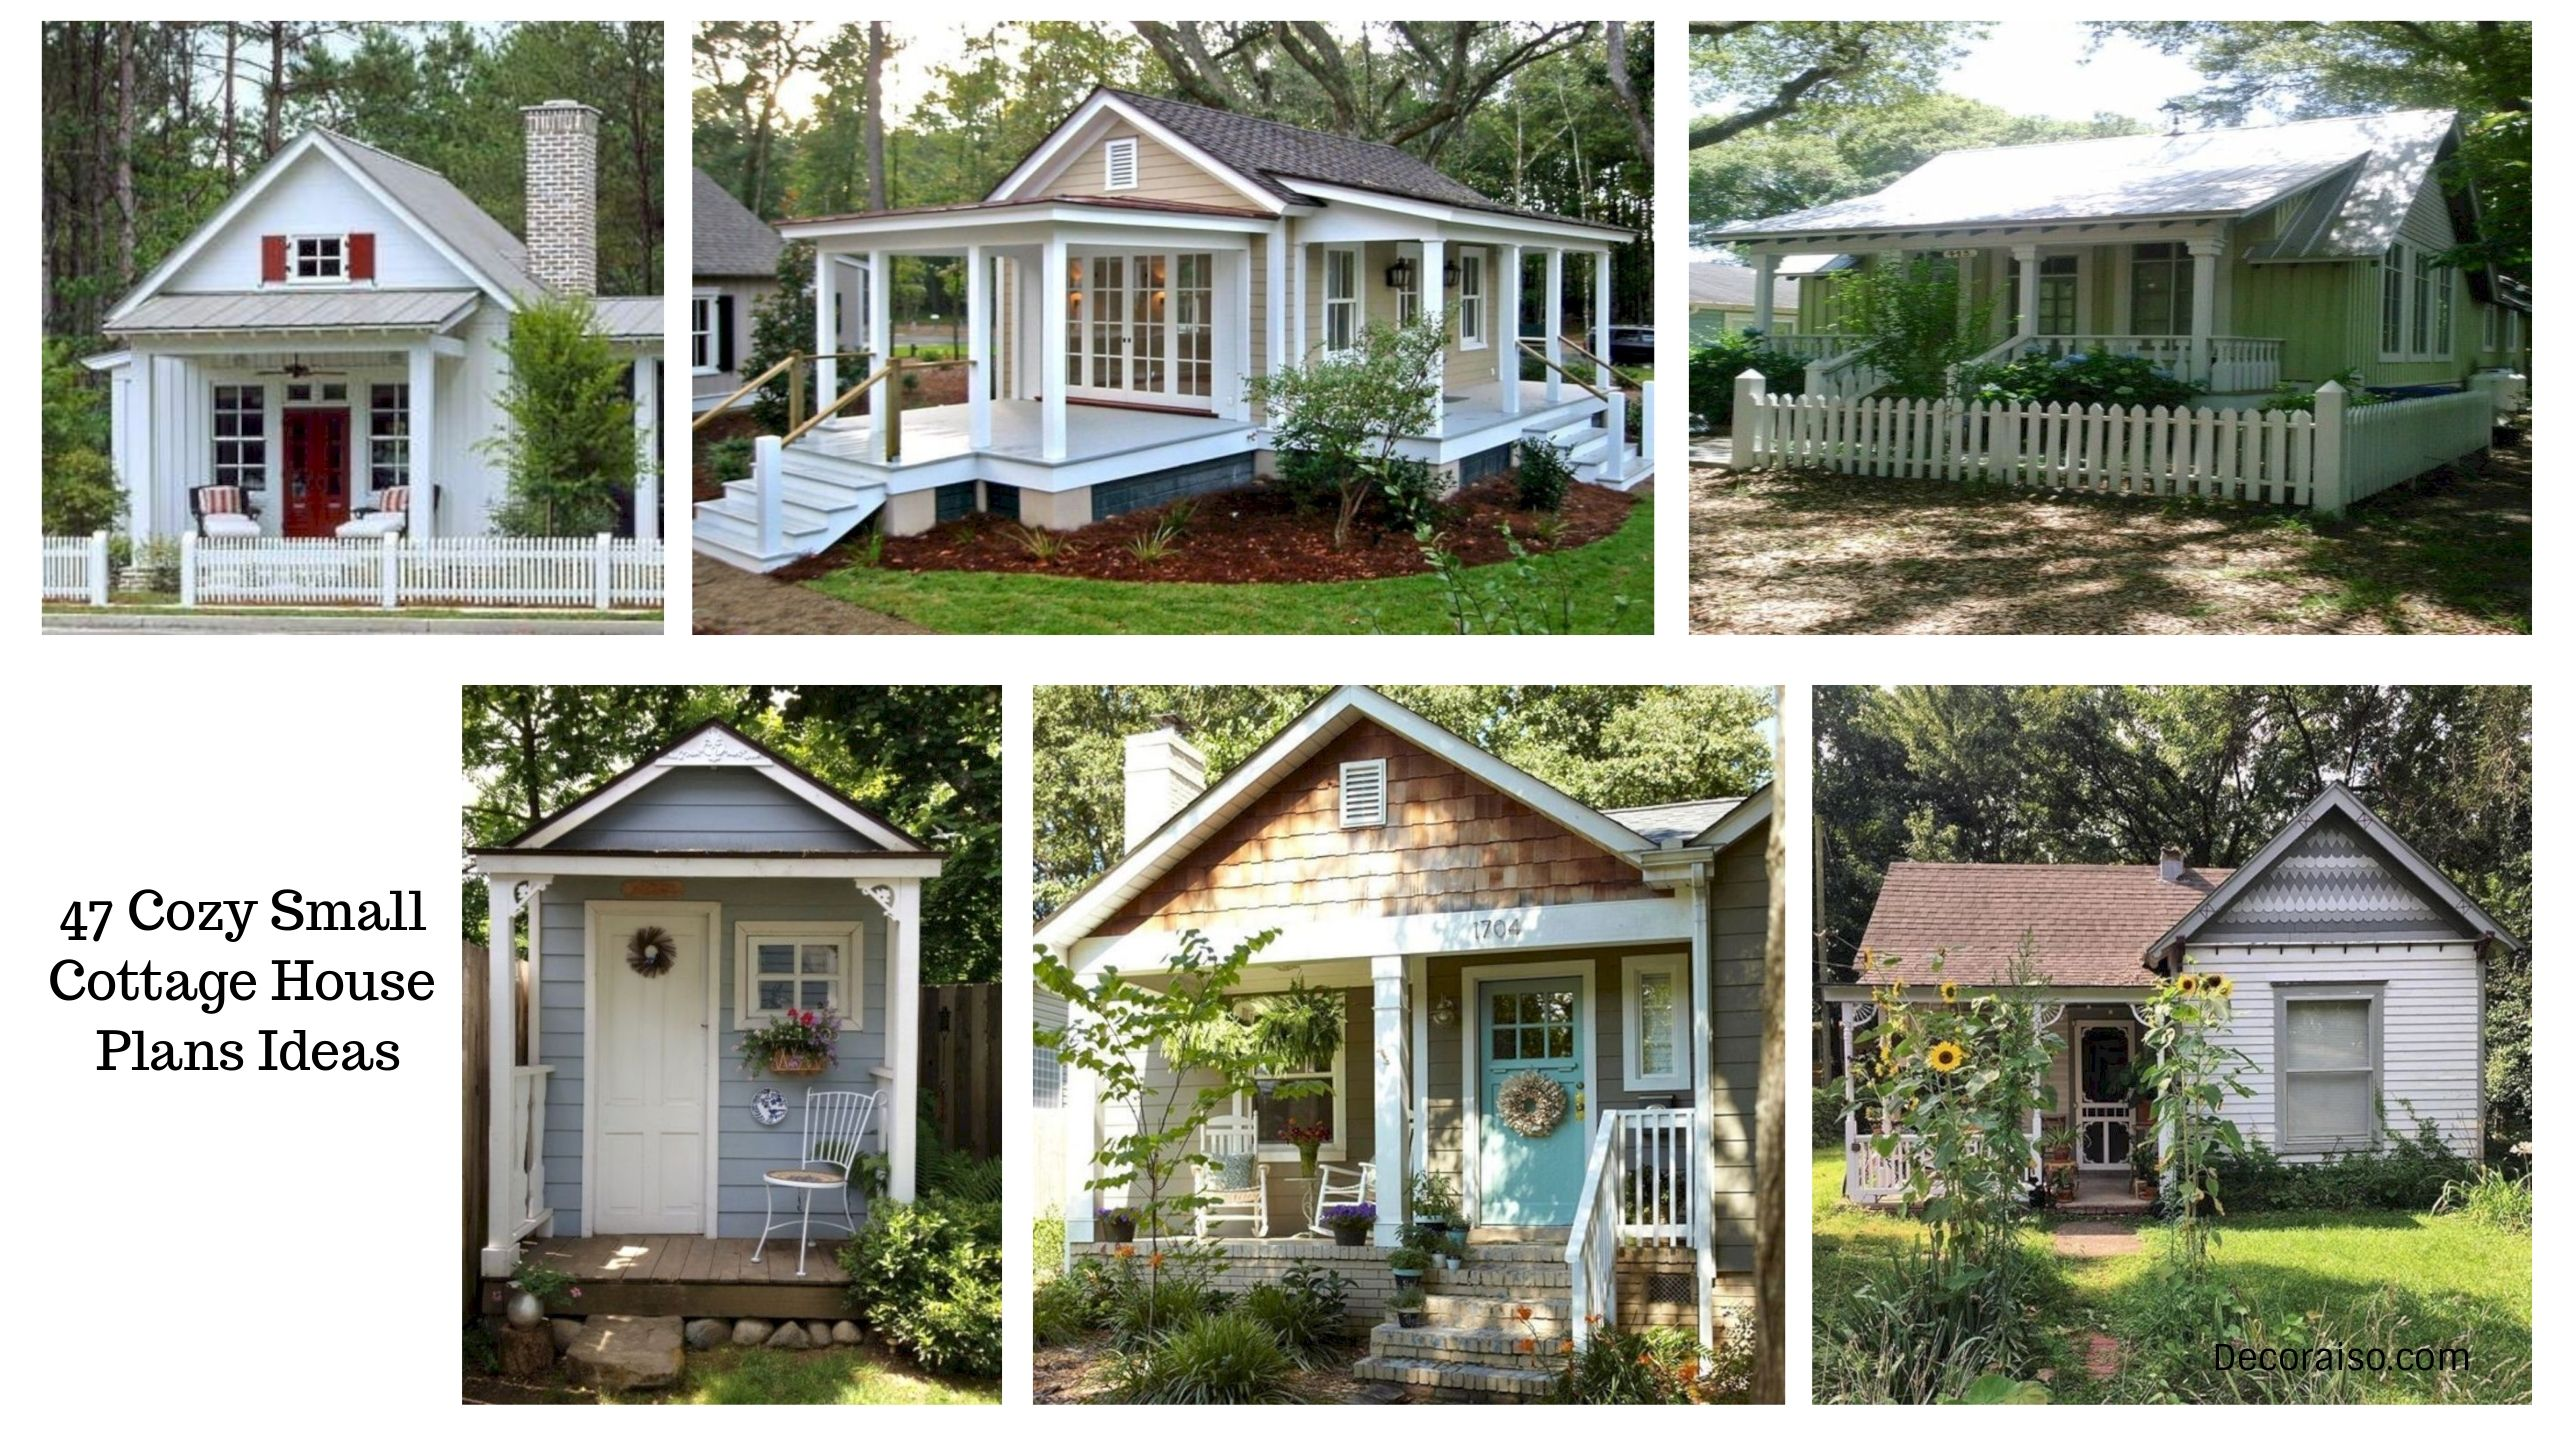 Stunning 47 Cozy Small Cottage House Plans Ideas Http Decoraiso Com Index Php 2018 06 02 47 Cottage House Plans Small Cottage Homes Small Cottage House Plans